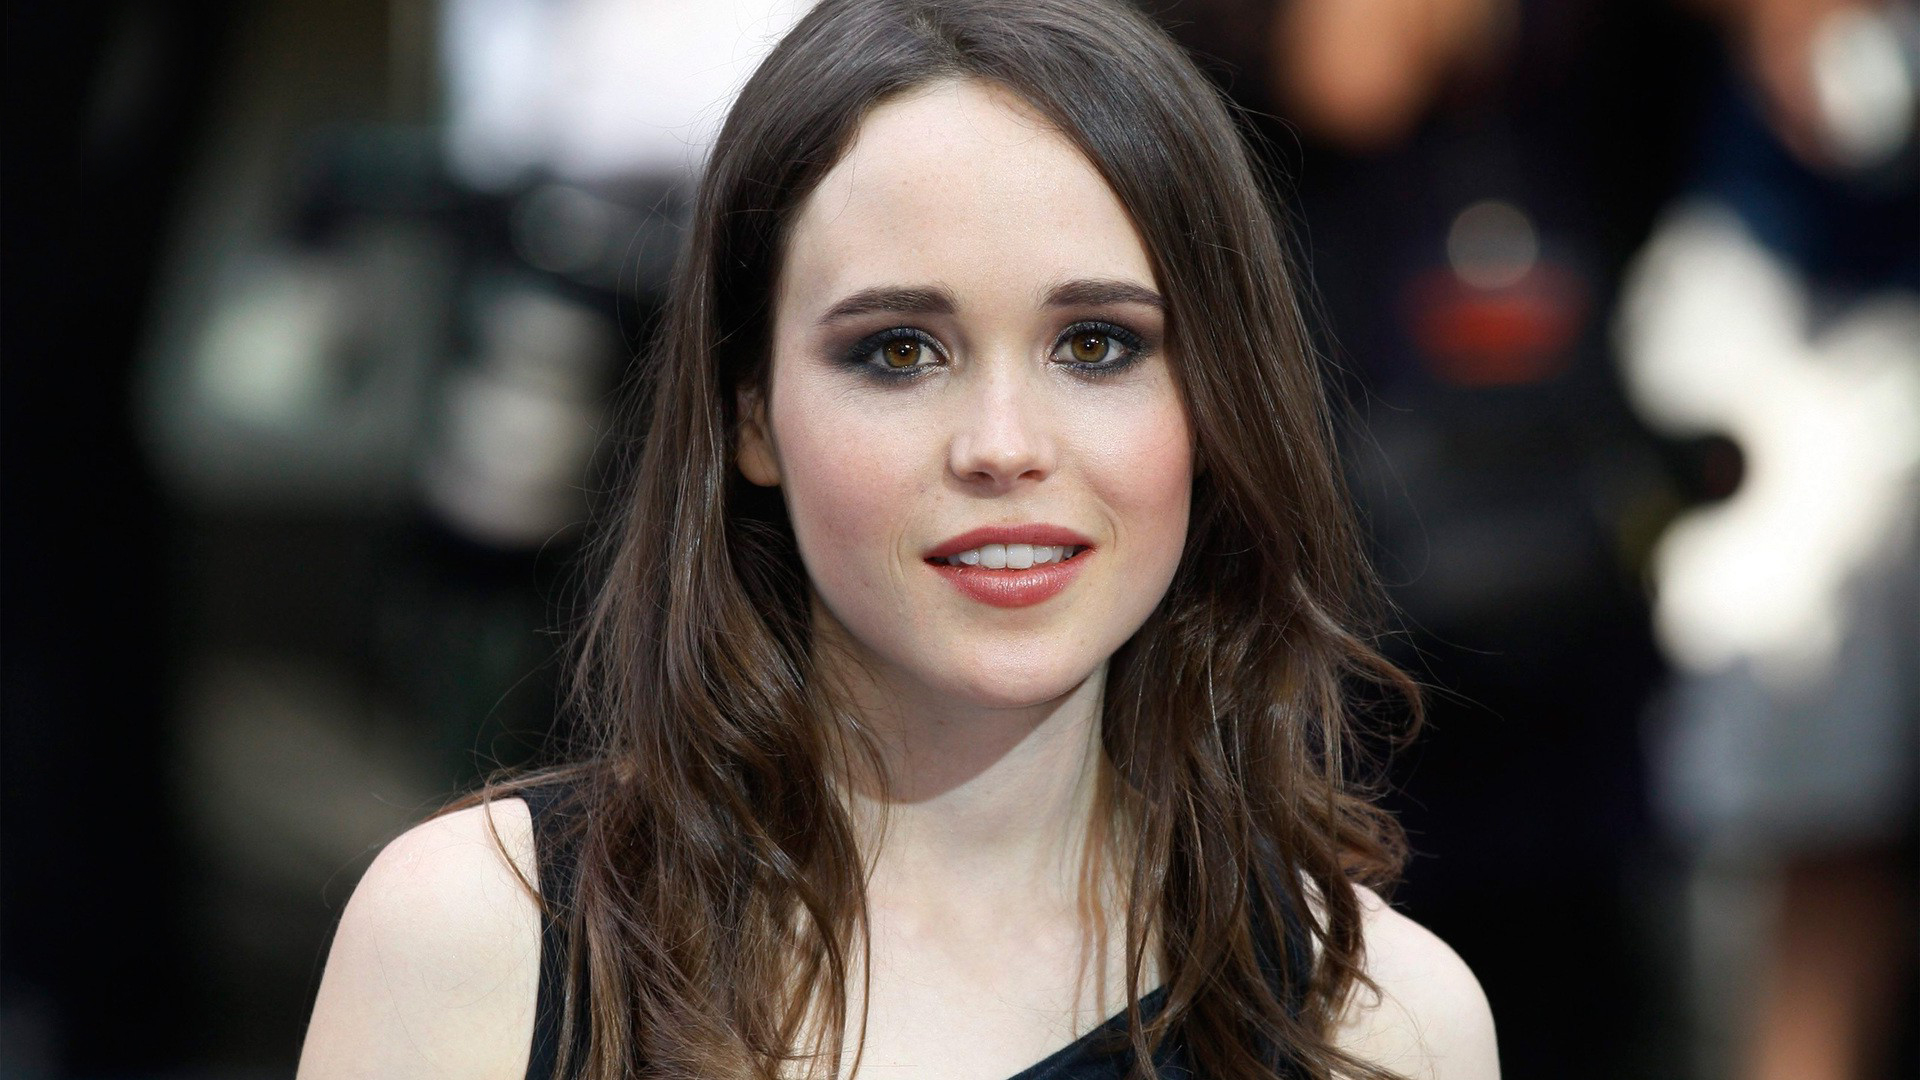 High Resolution Wallpaper | Ellen Page 1920x1080 px